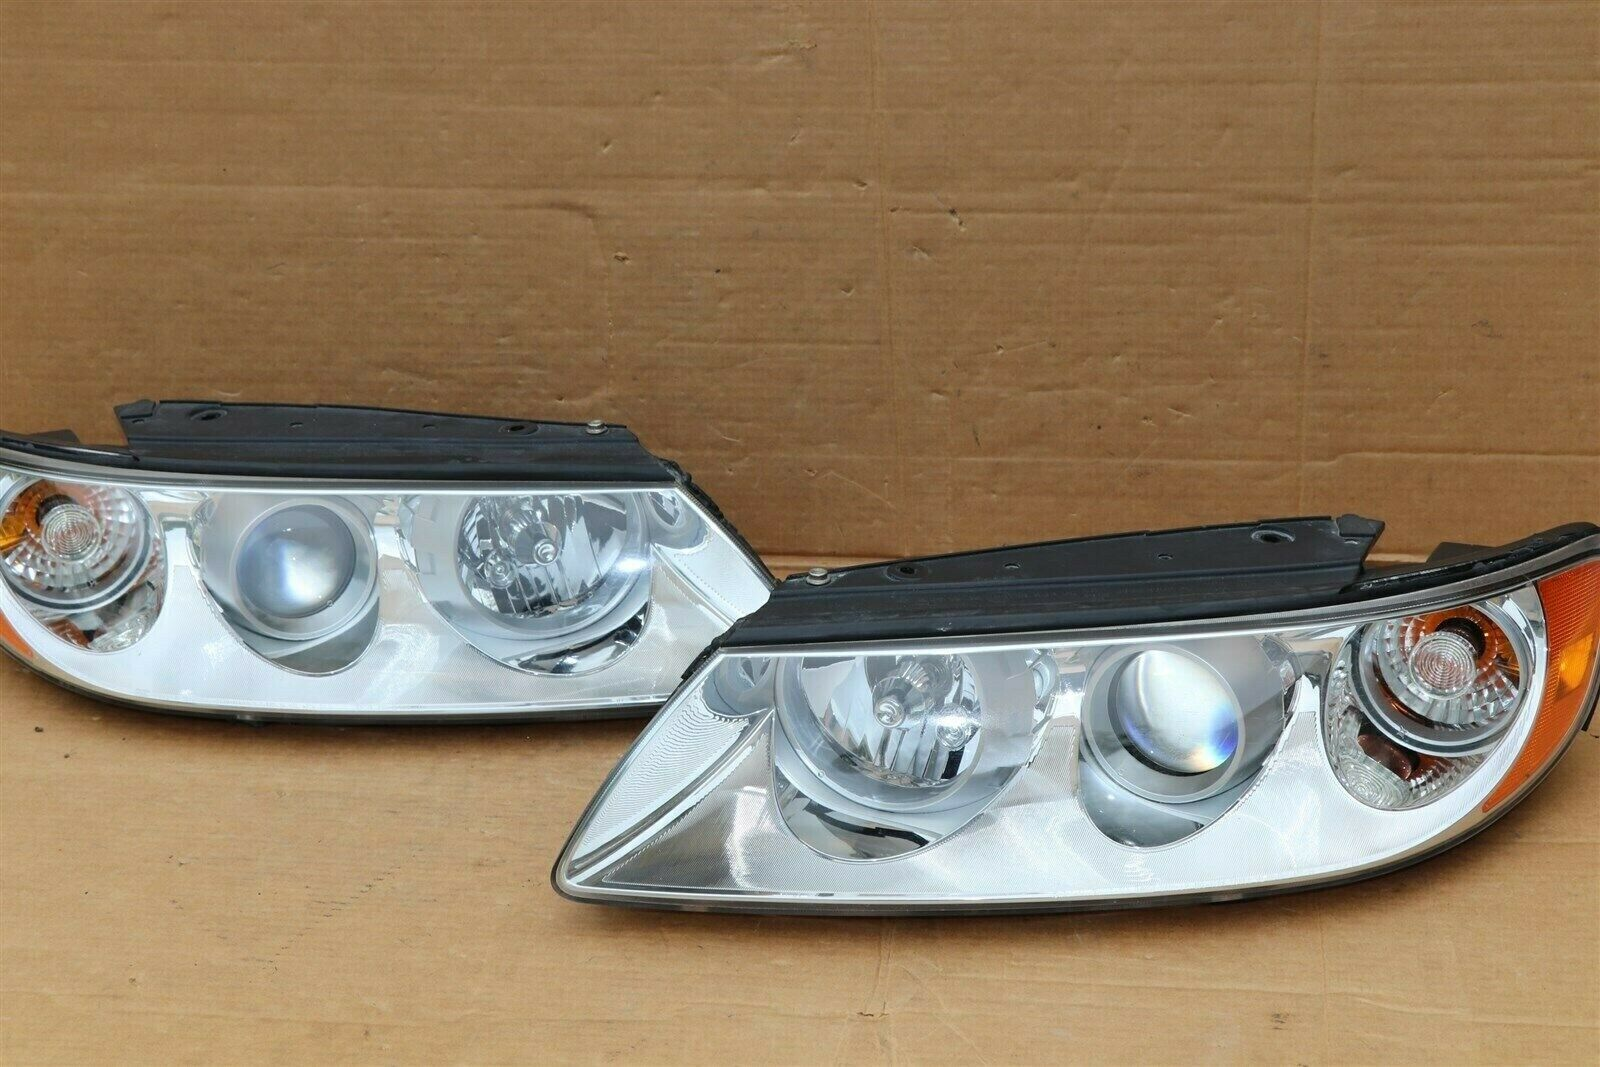 06-07 Hyundai Azera 7-Pin Headlight Head Light Lamps Set L&R - POLISHED